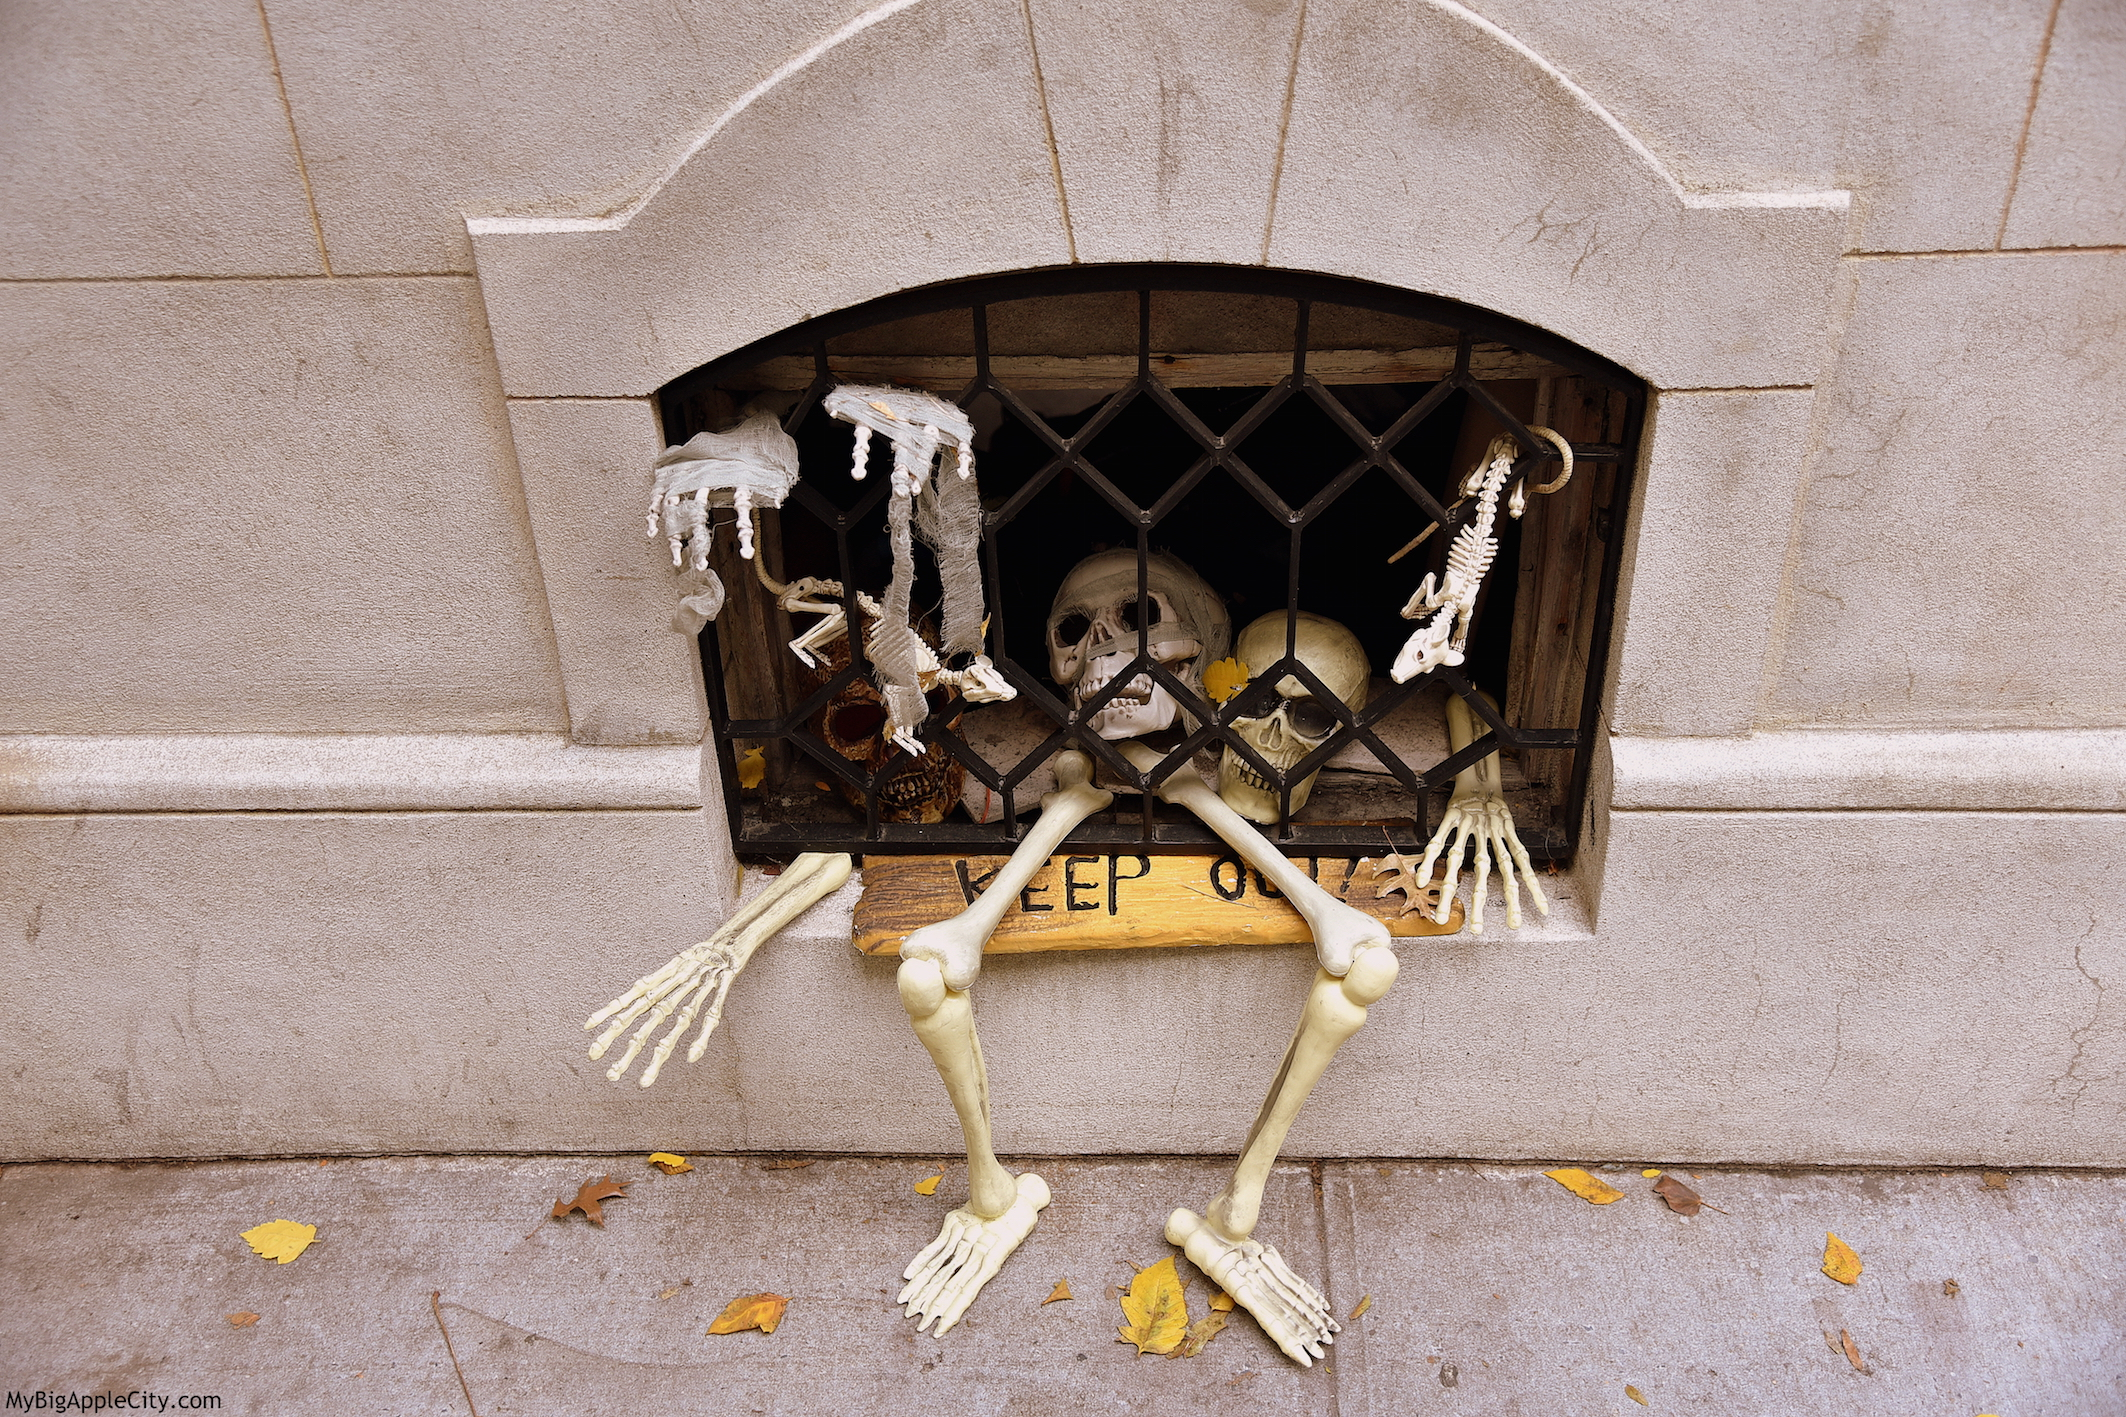 Halloween-NYC-skeleton-houses-travelblog-MyBigAppleCity